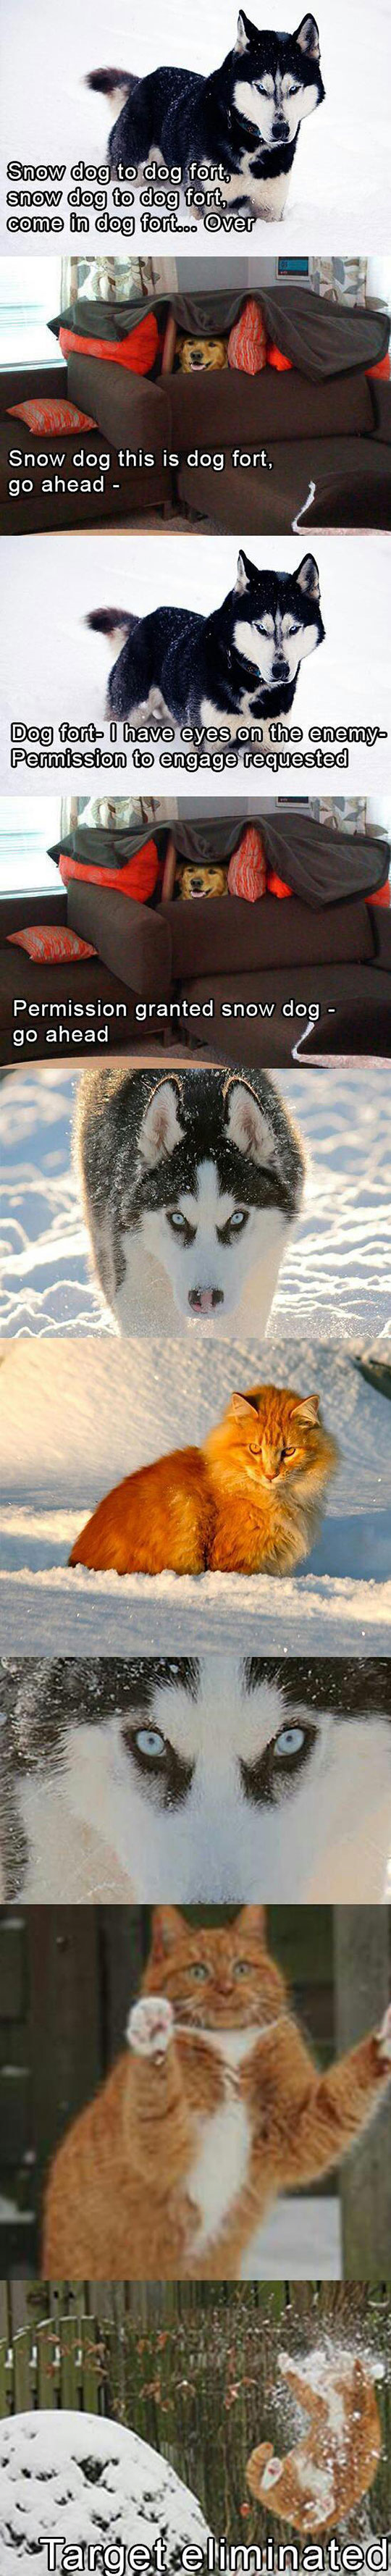 cool-cat-wolf-dog-snow-fight